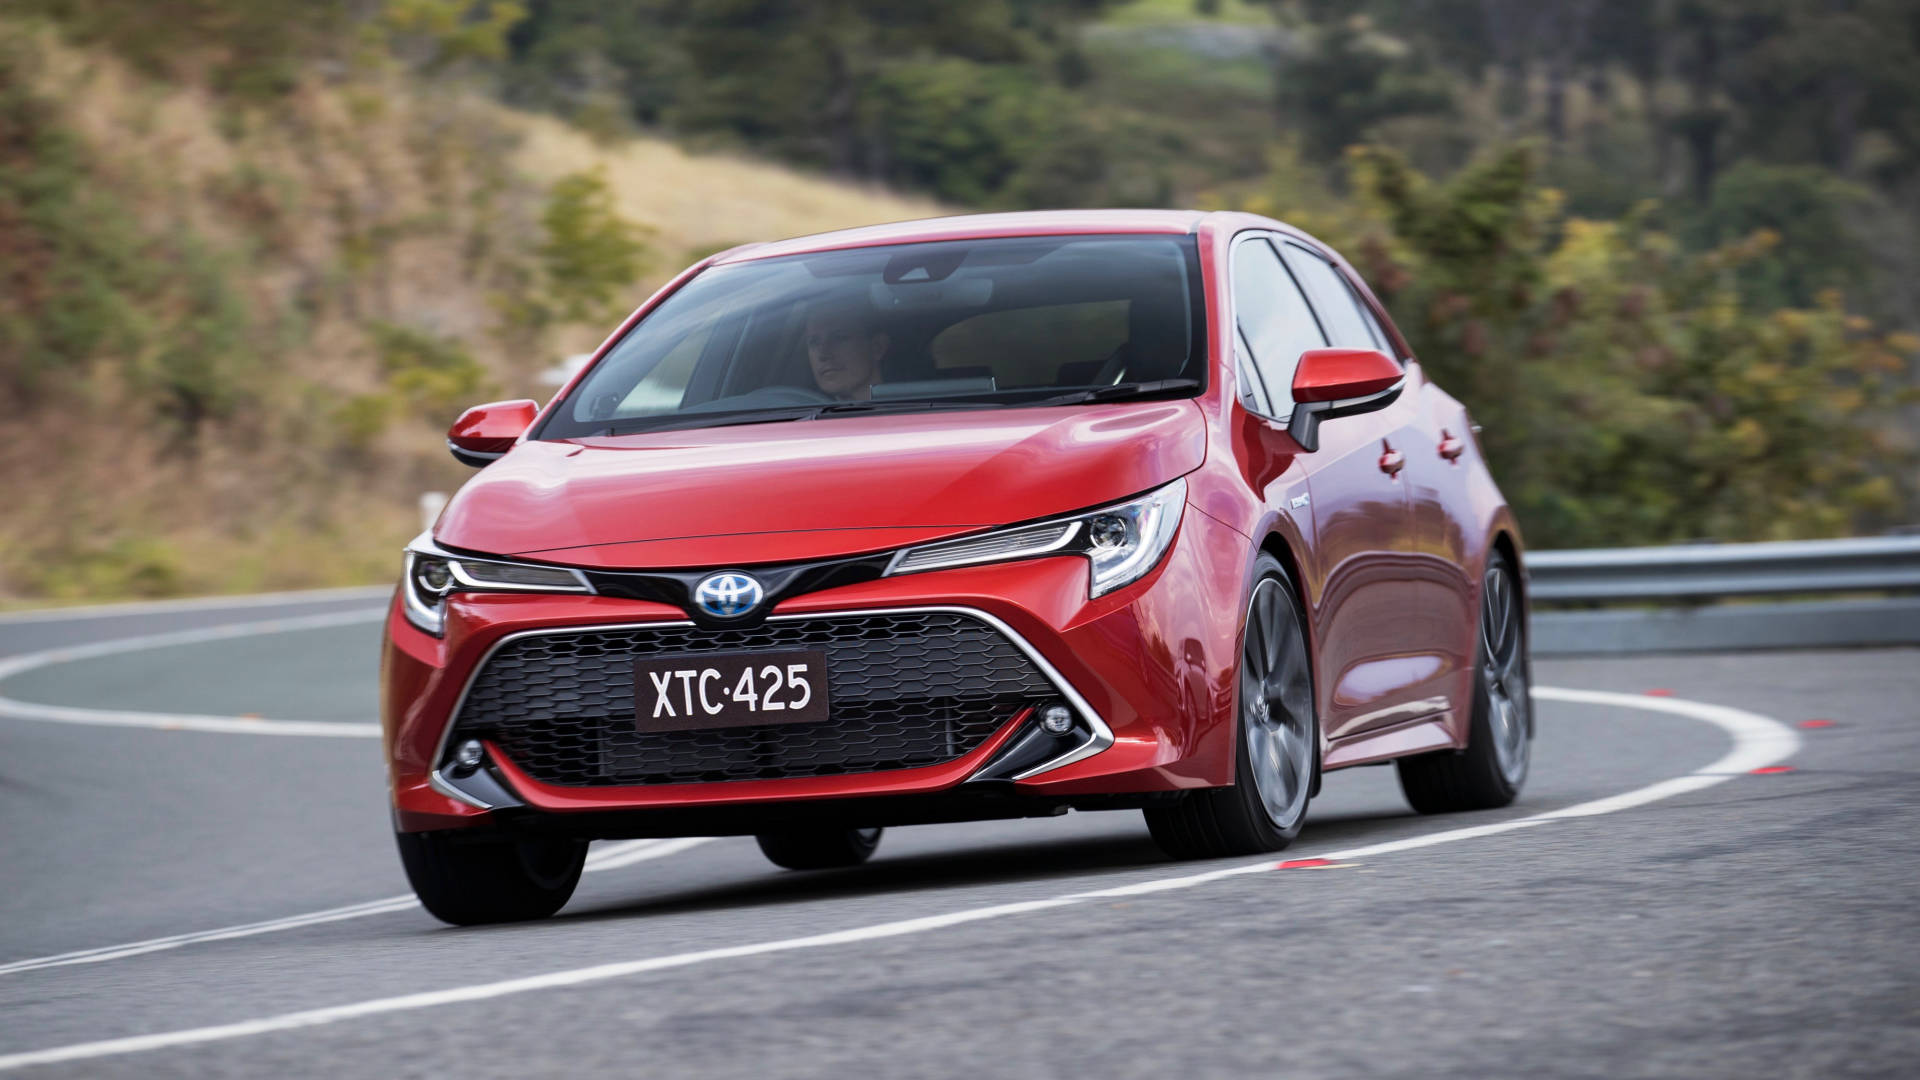 2019 Toyota Corolla ZR hybrid front 3/4 driving